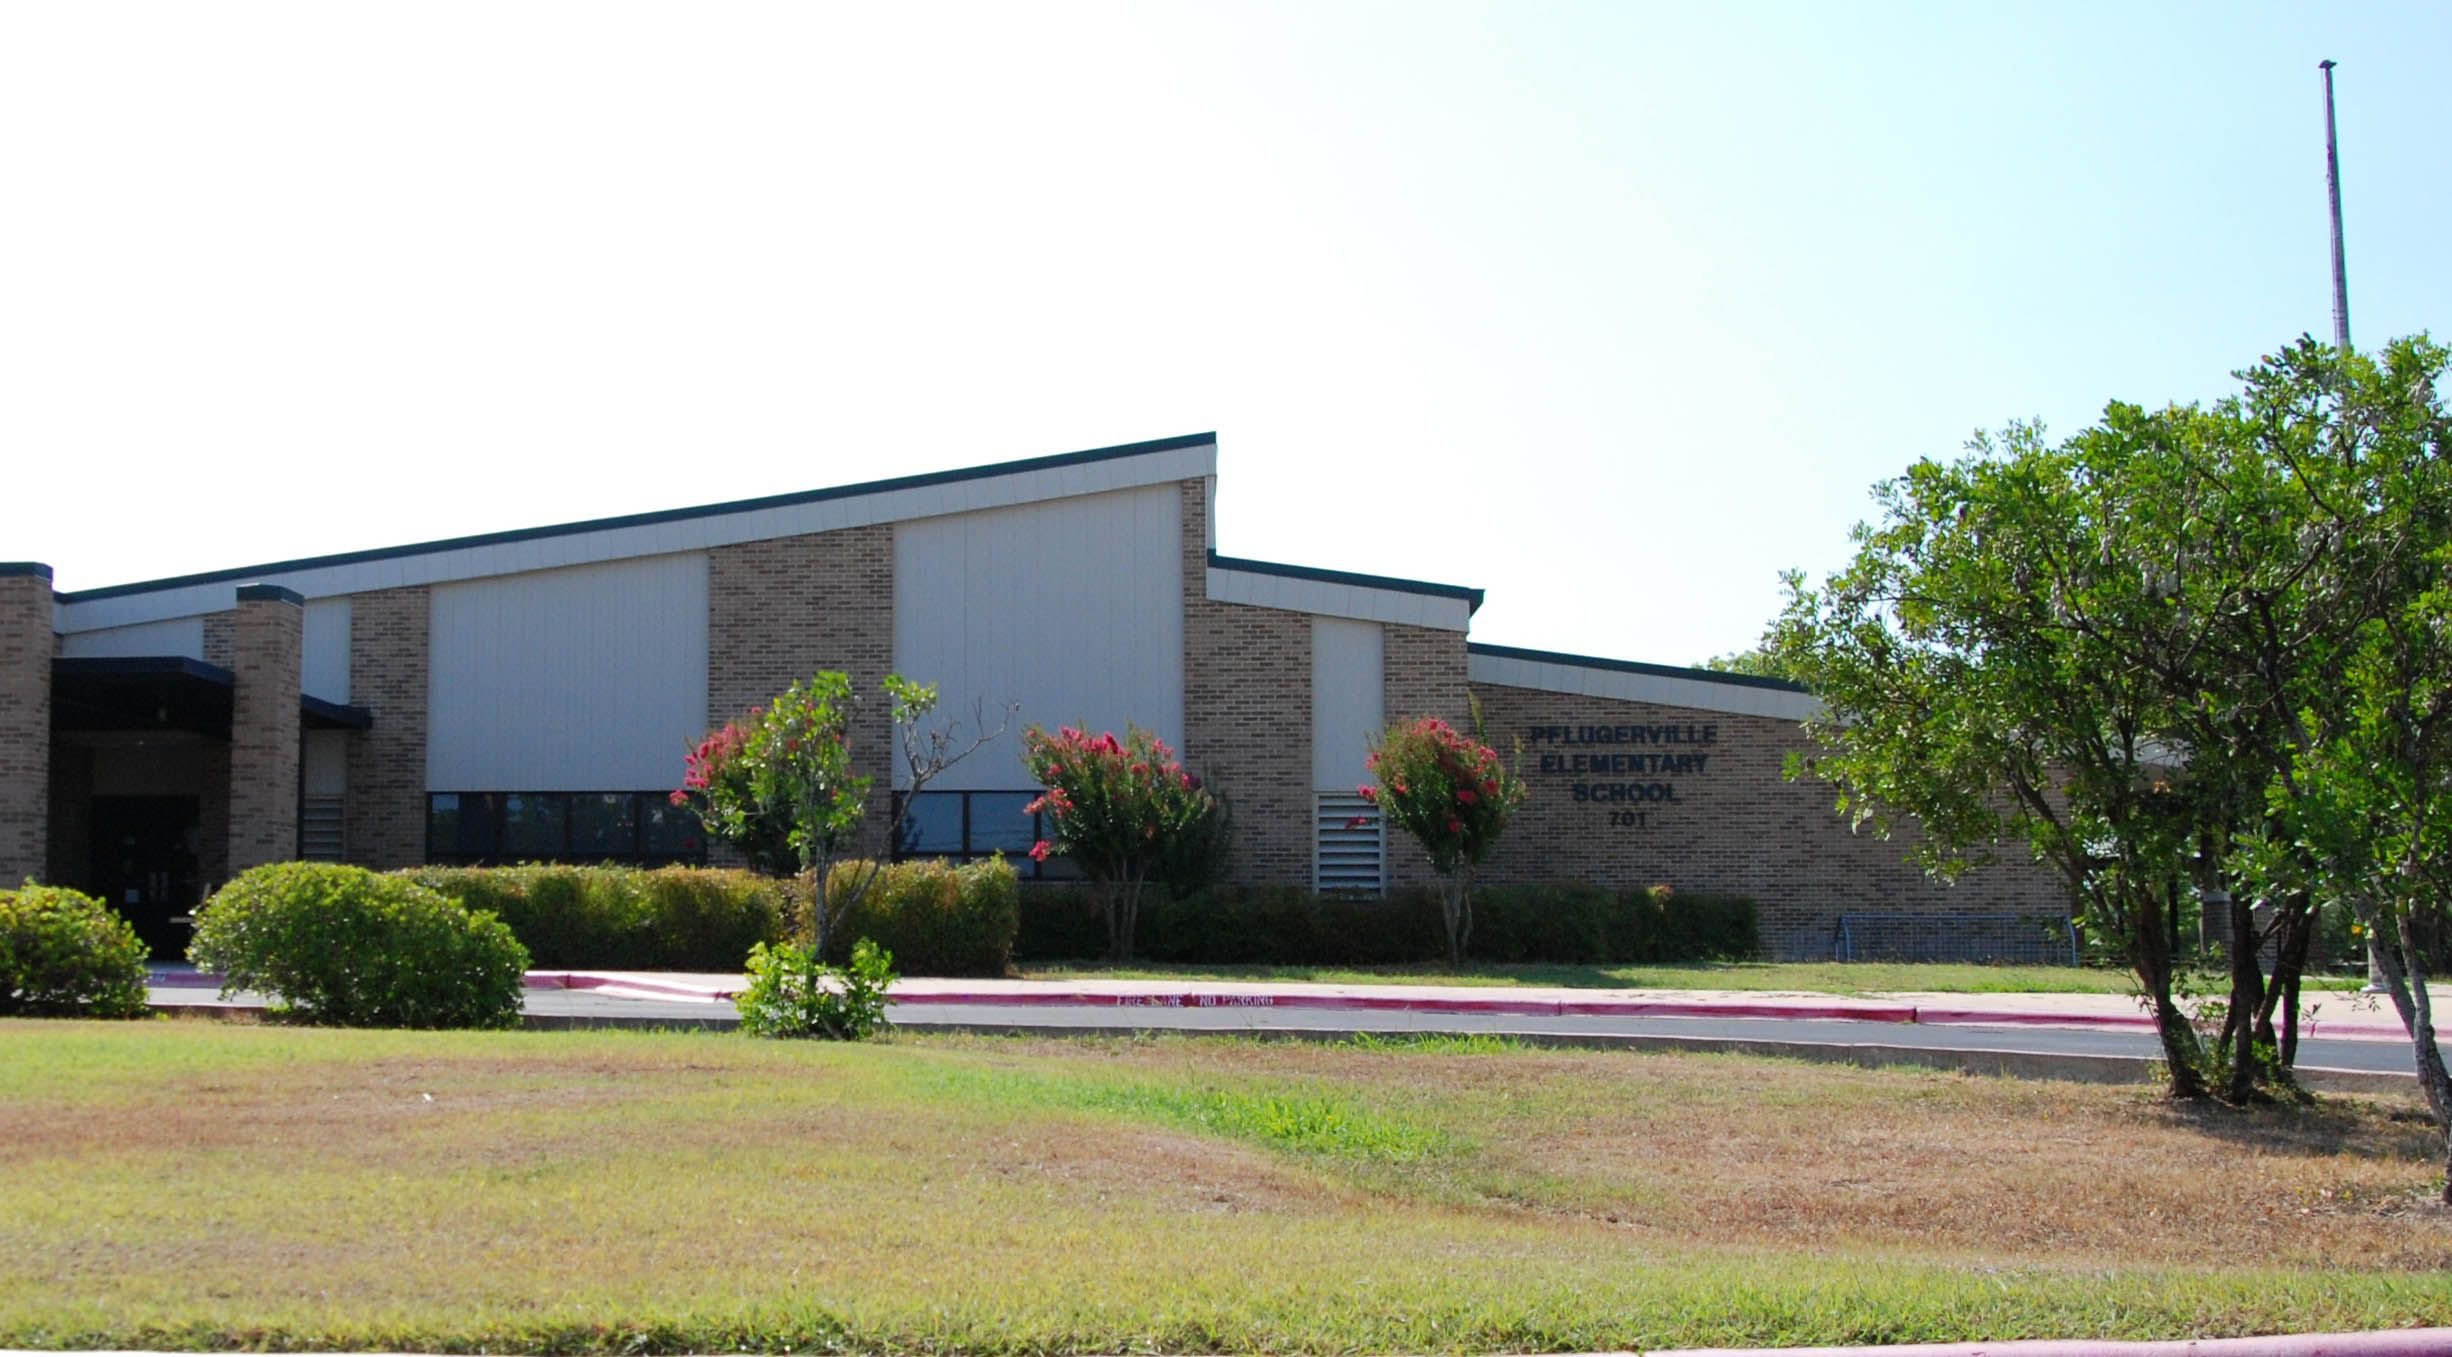 homes near pflugerville elementary school in pflugerville texas